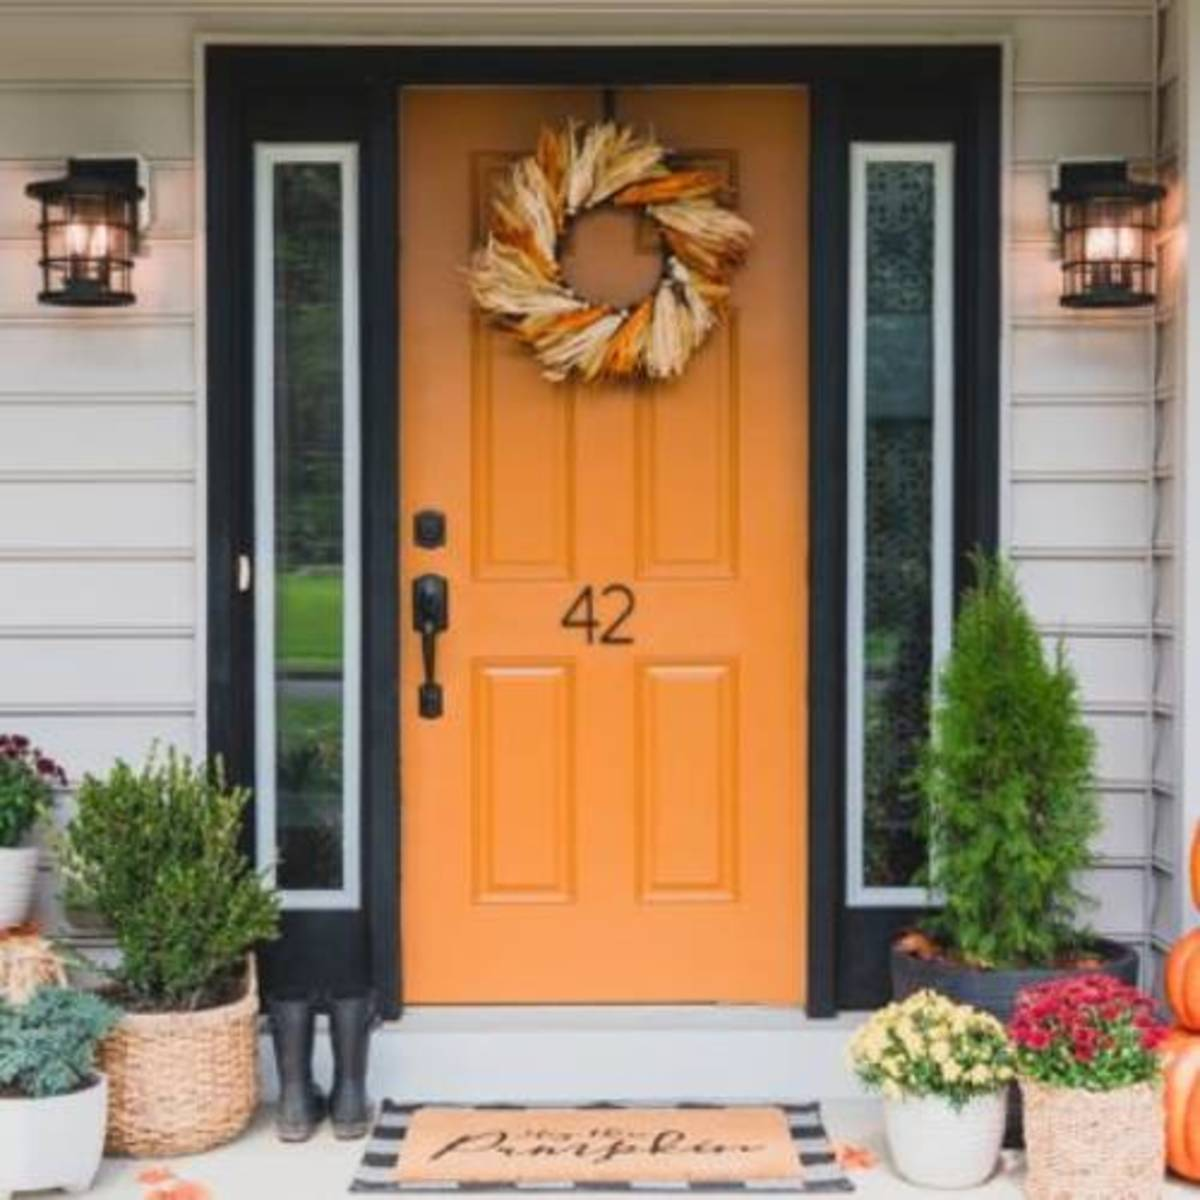 Fall for the spice paint on the entry door!